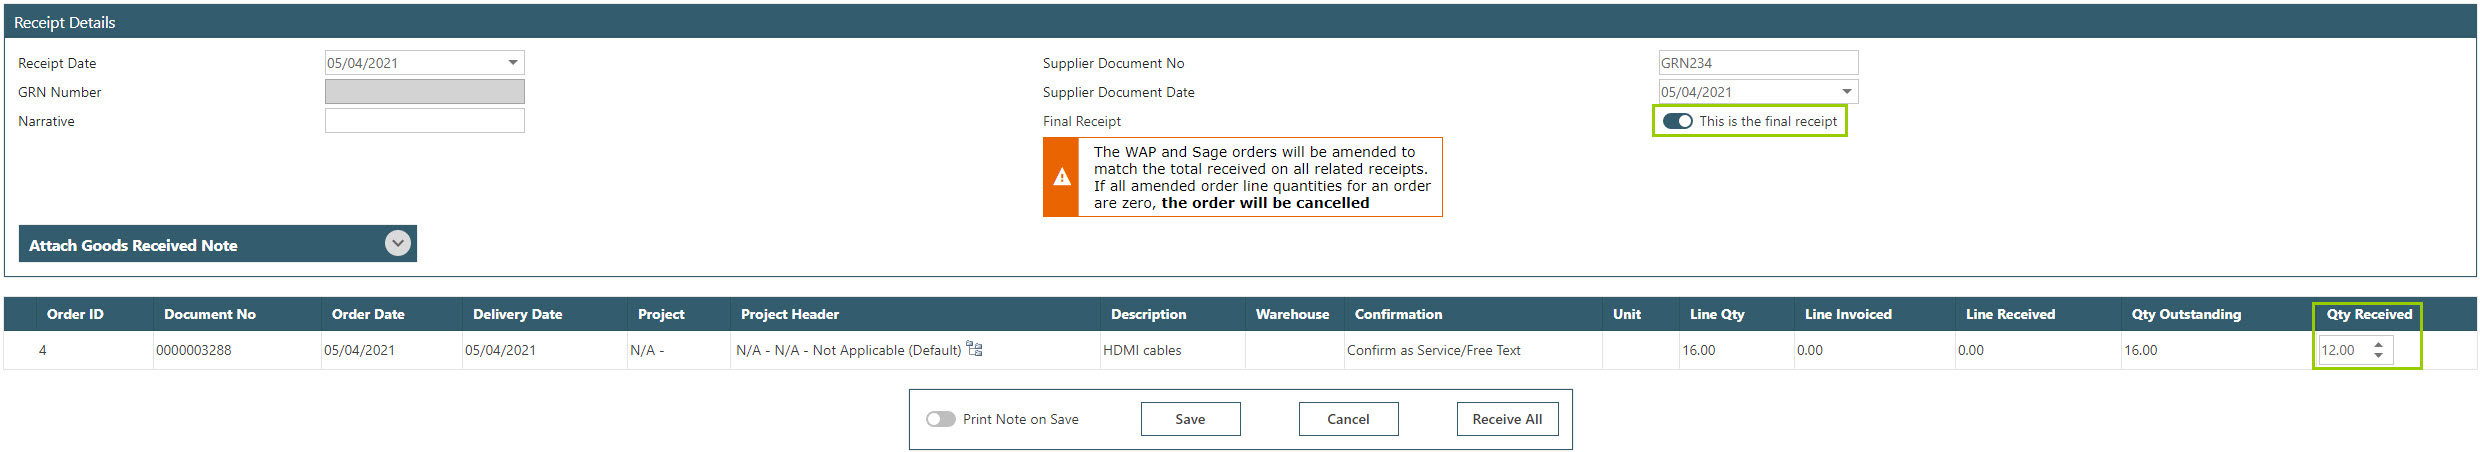 Sicon WAP Purchase Requisitions Help and User Guide - Requisition HUG Section 10.4 Image 1